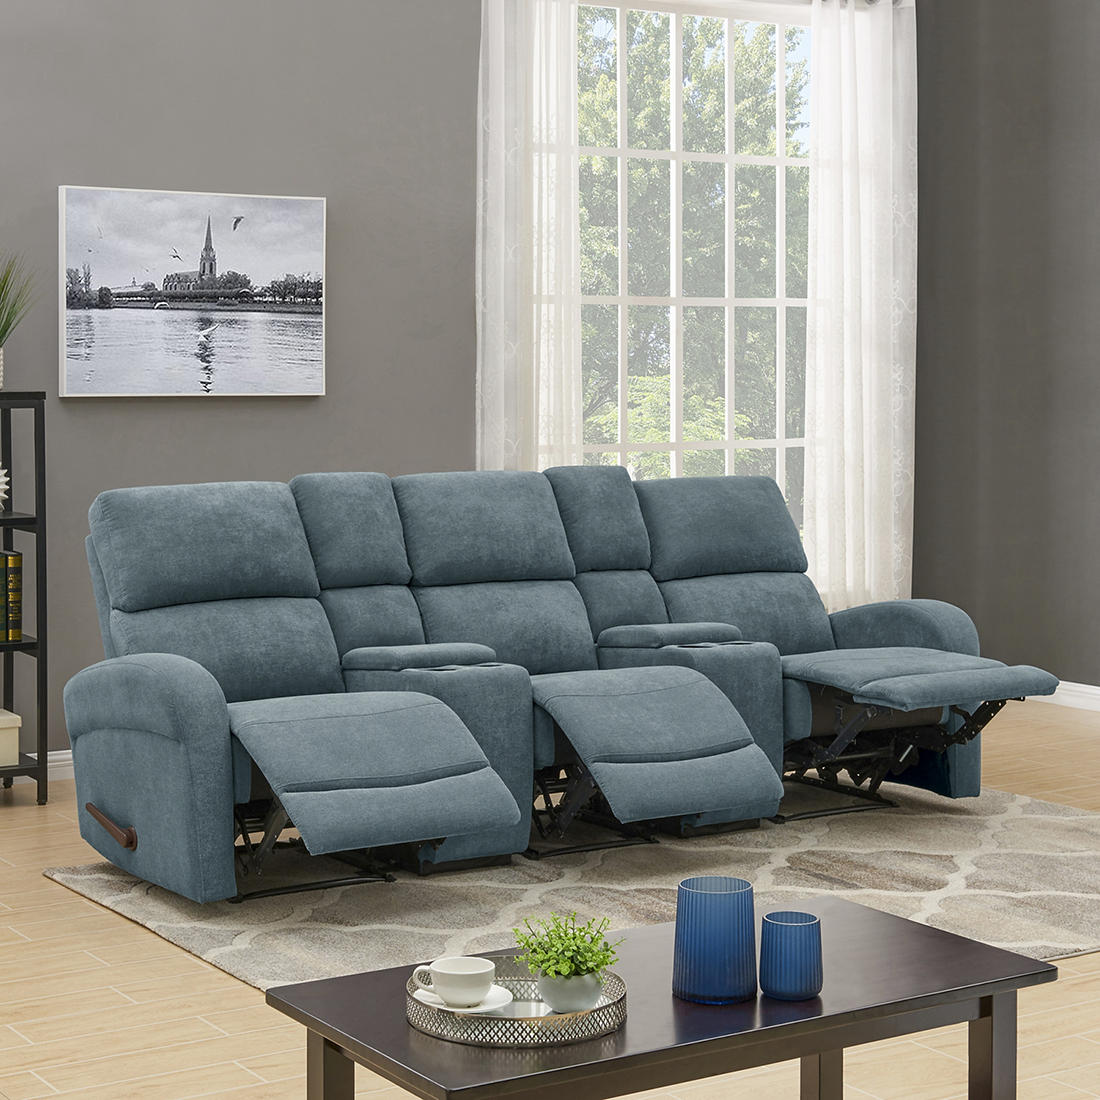 ProLounger 3-Seat Recliner Sofa with Storage Console - Blue Chenille